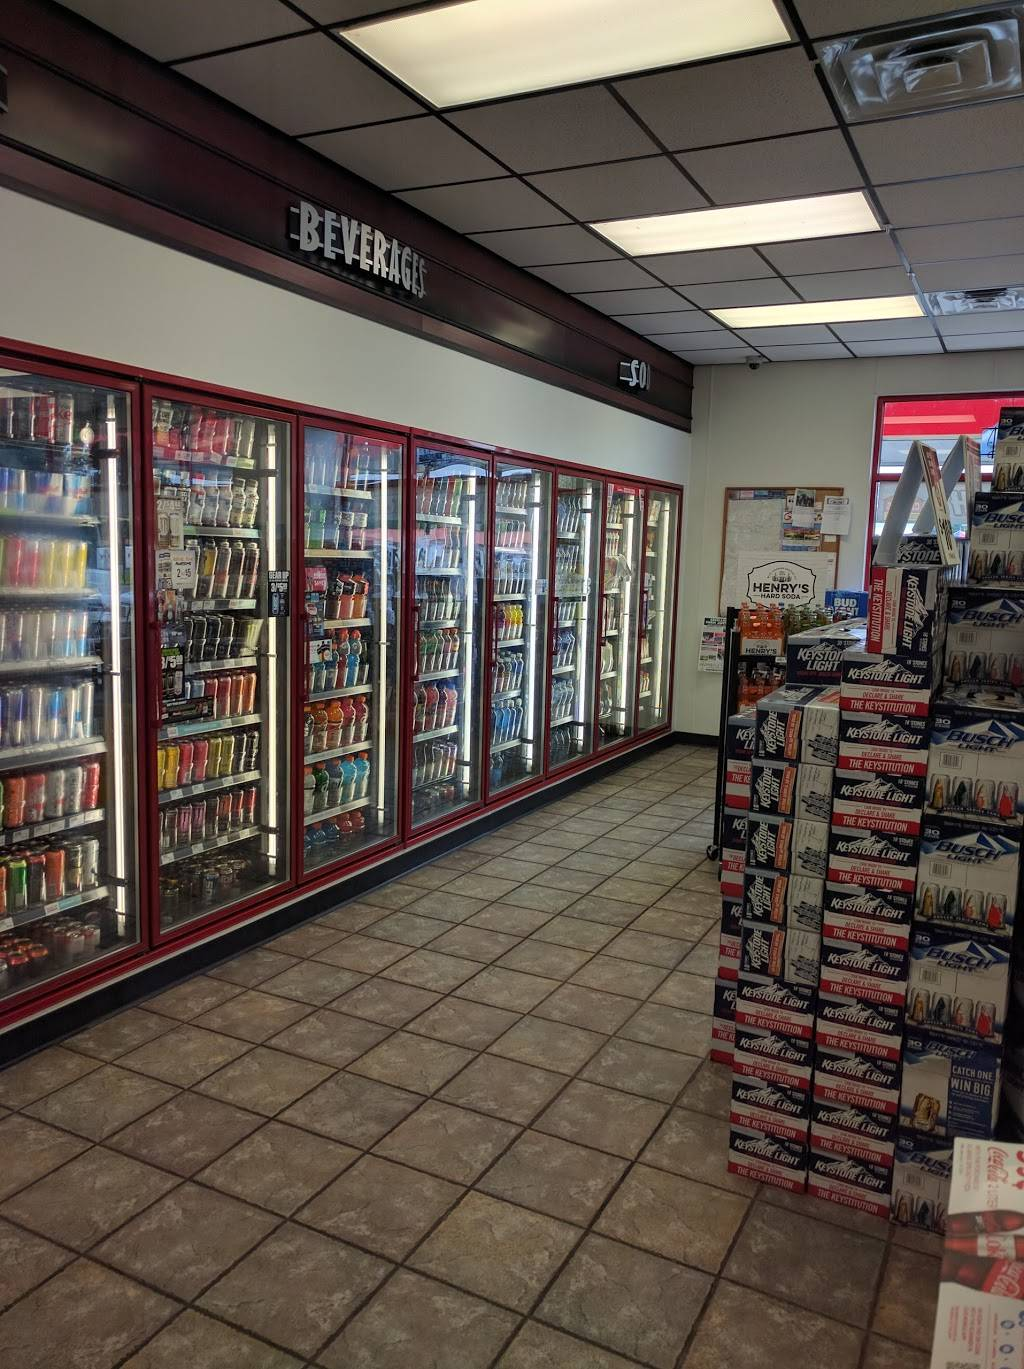 Caseys   meal takeaway   240 S Hwy 60, Marionville, MO 65705, USA   4174637783 OR +1 417-463-7783